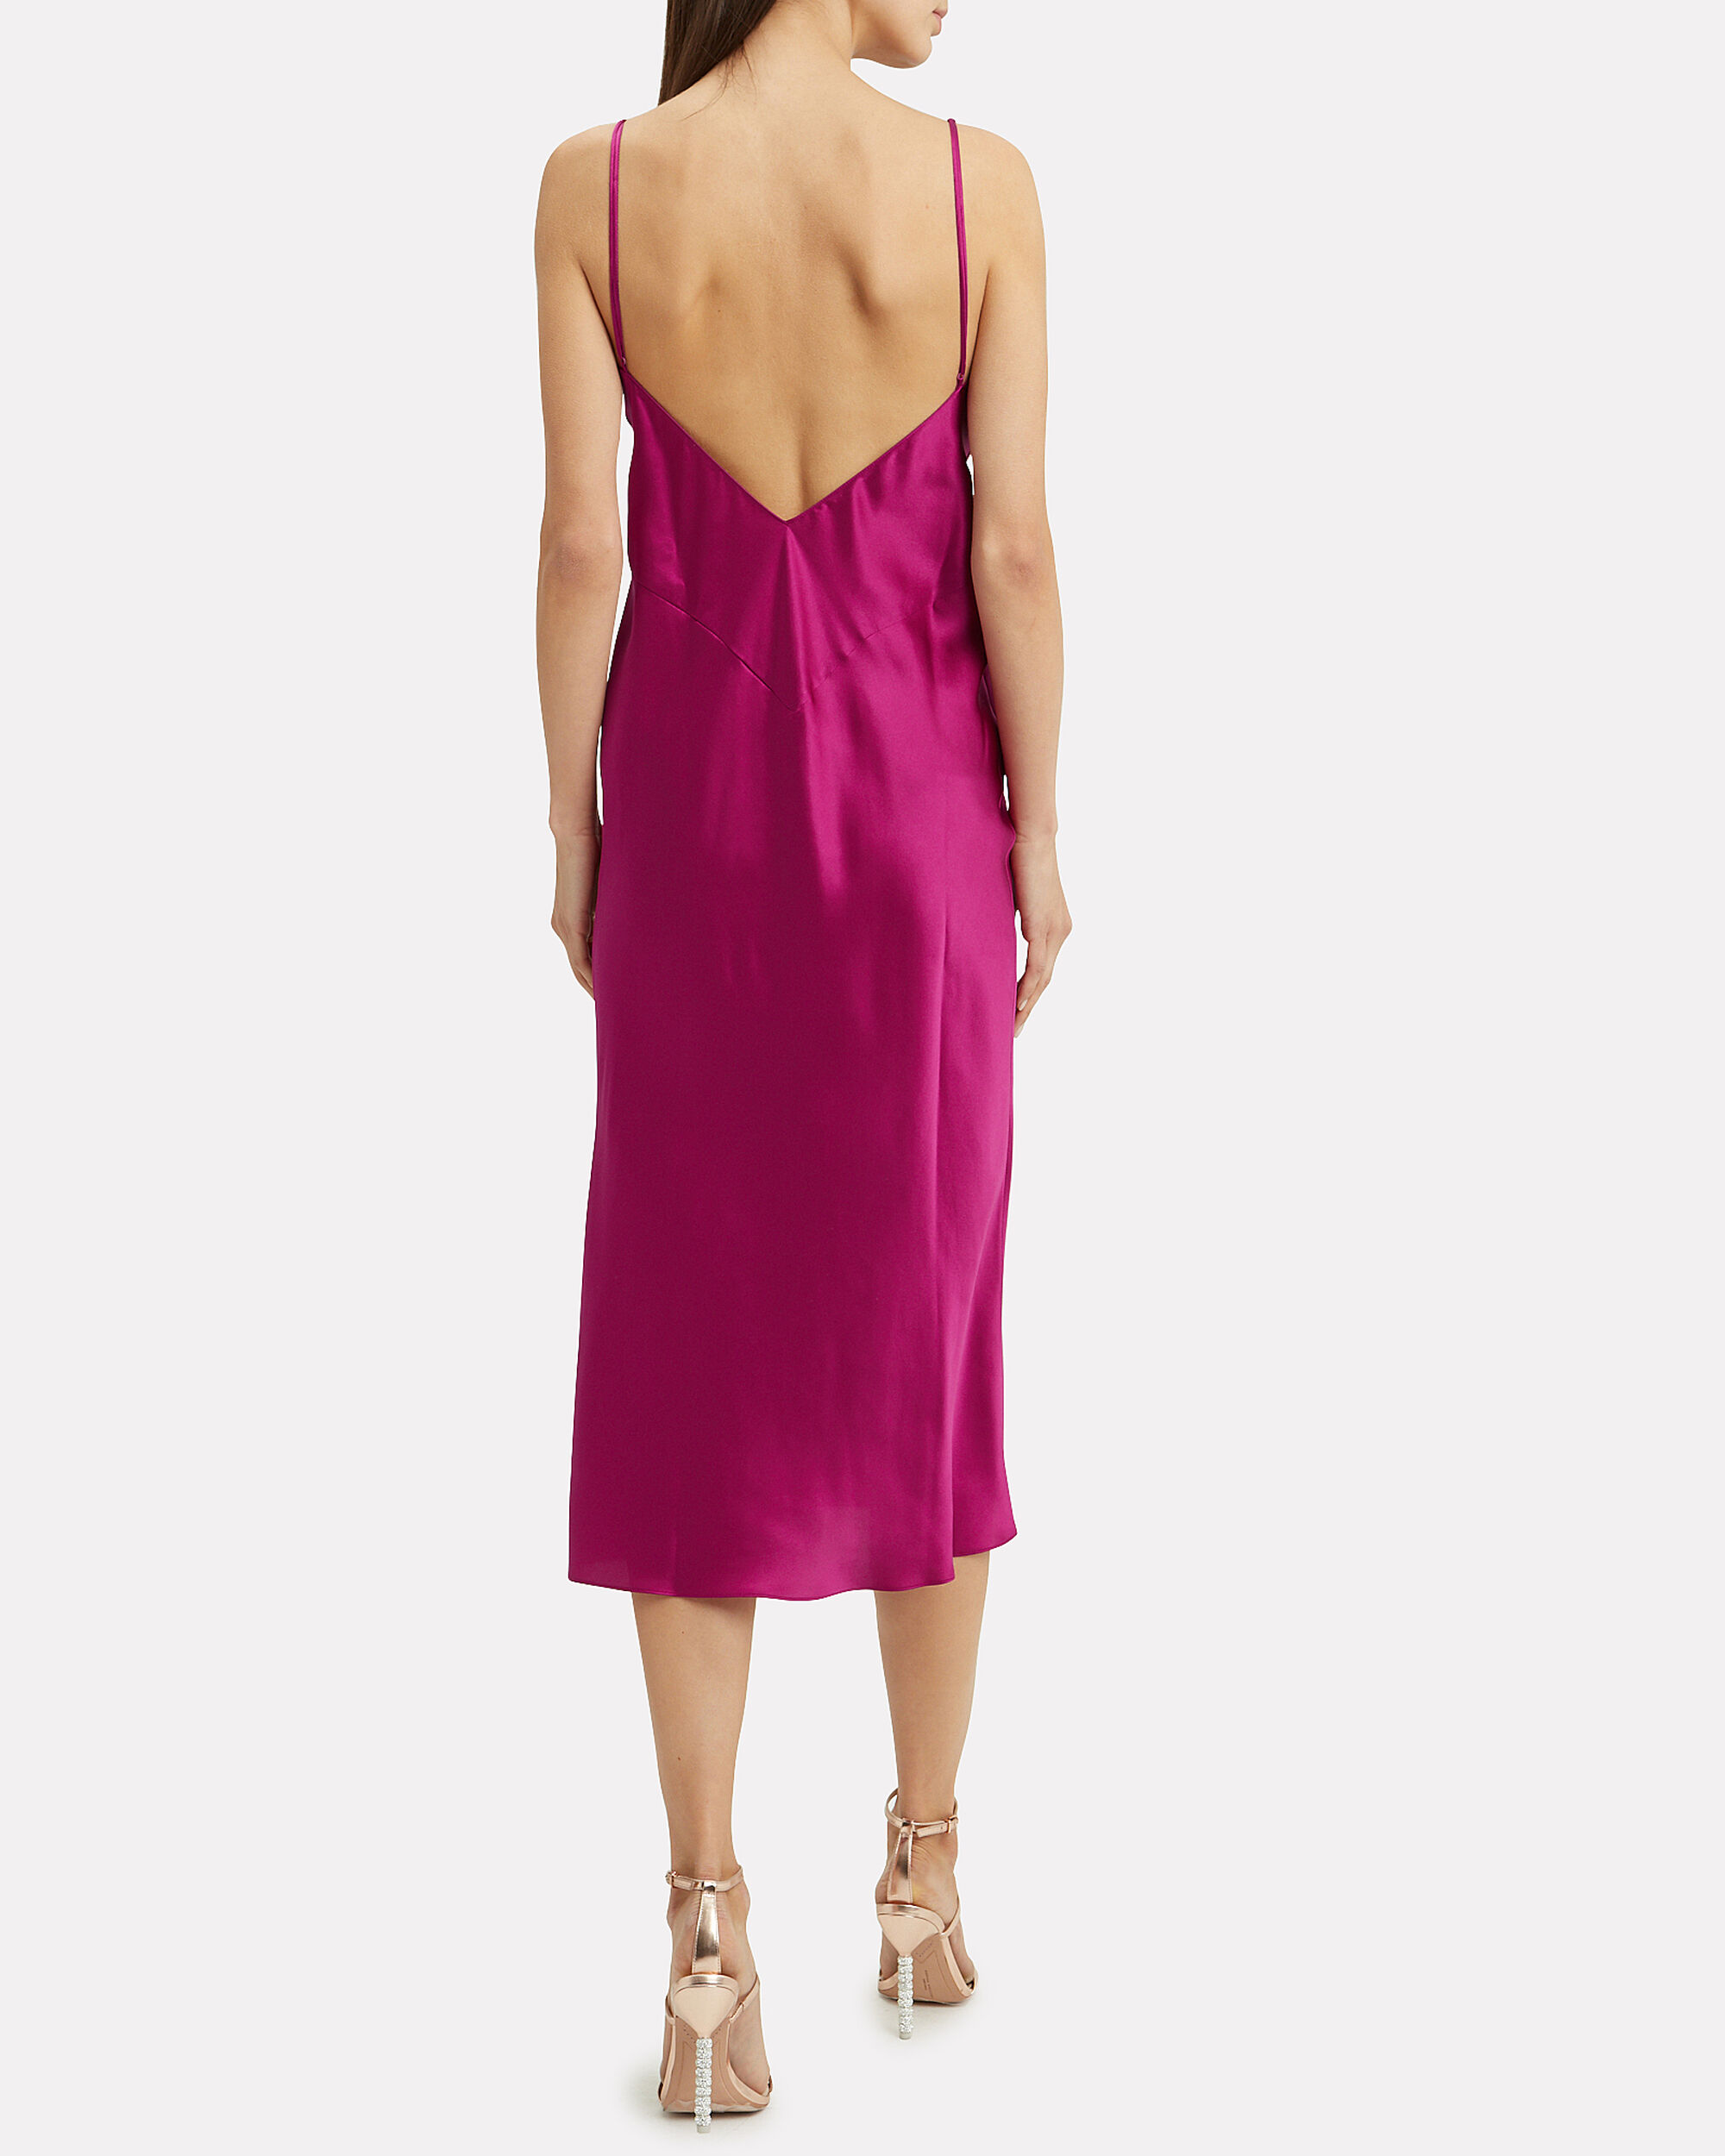 Issa Dark Pink Slip Dress, DARK PINK, hi-res